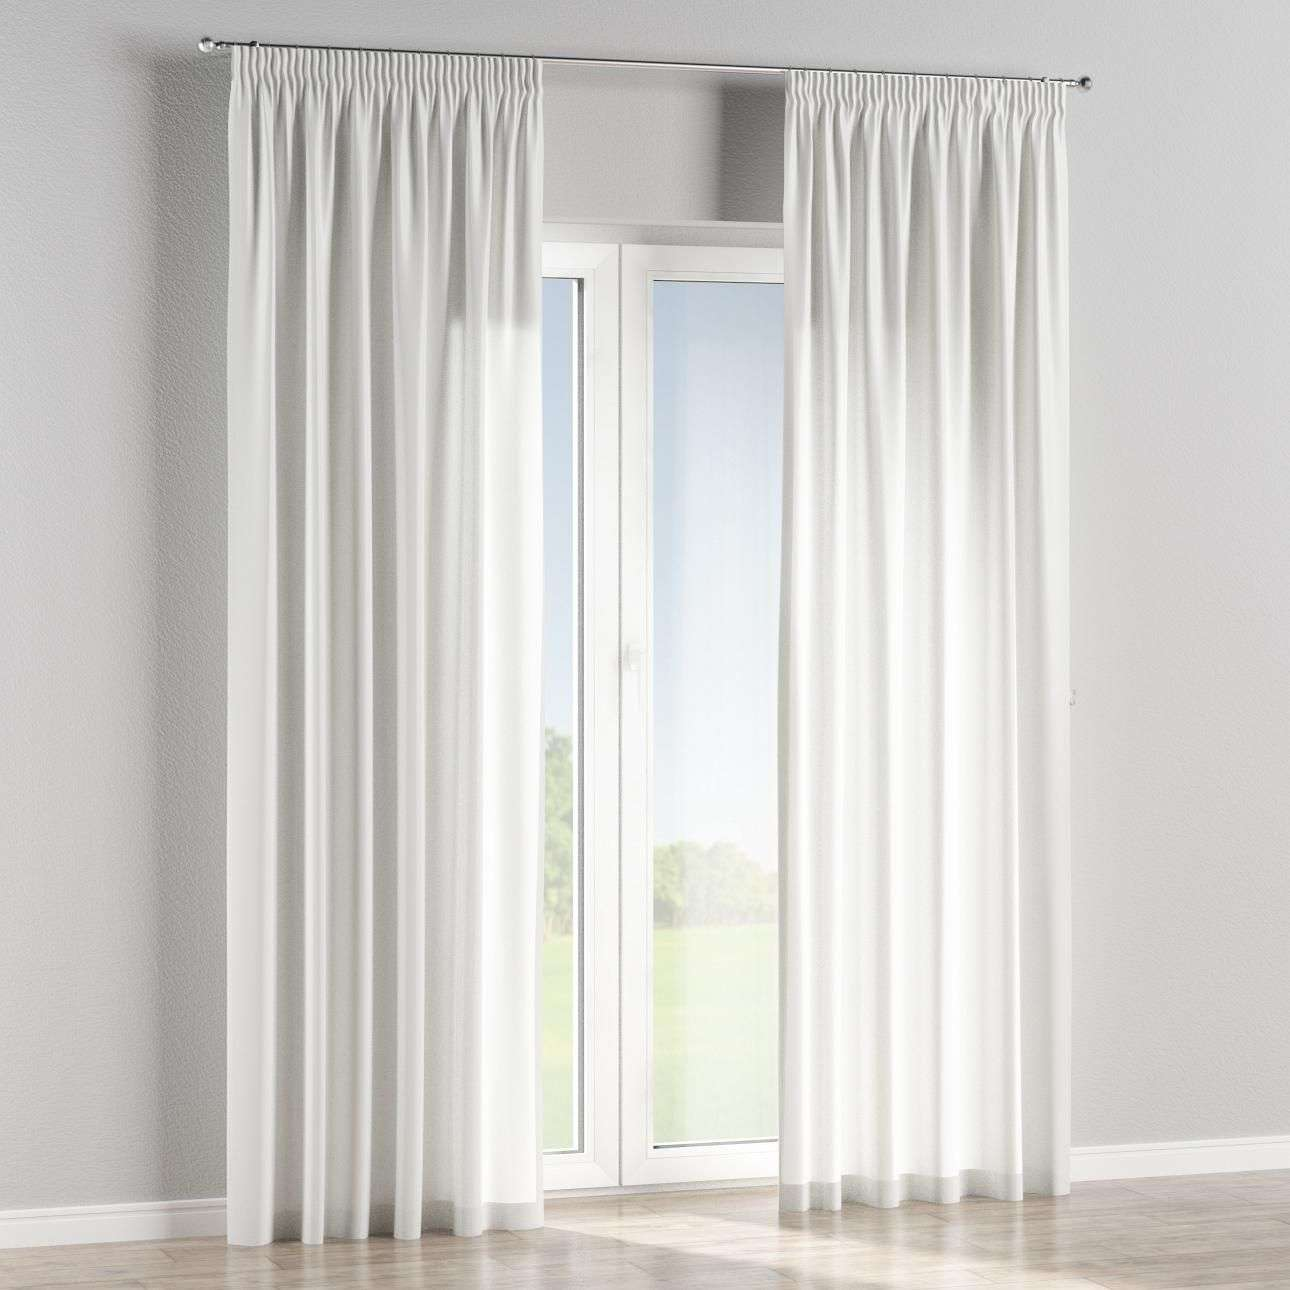 Pencil pleat curtains in collection Nordic, fabric: 630-80